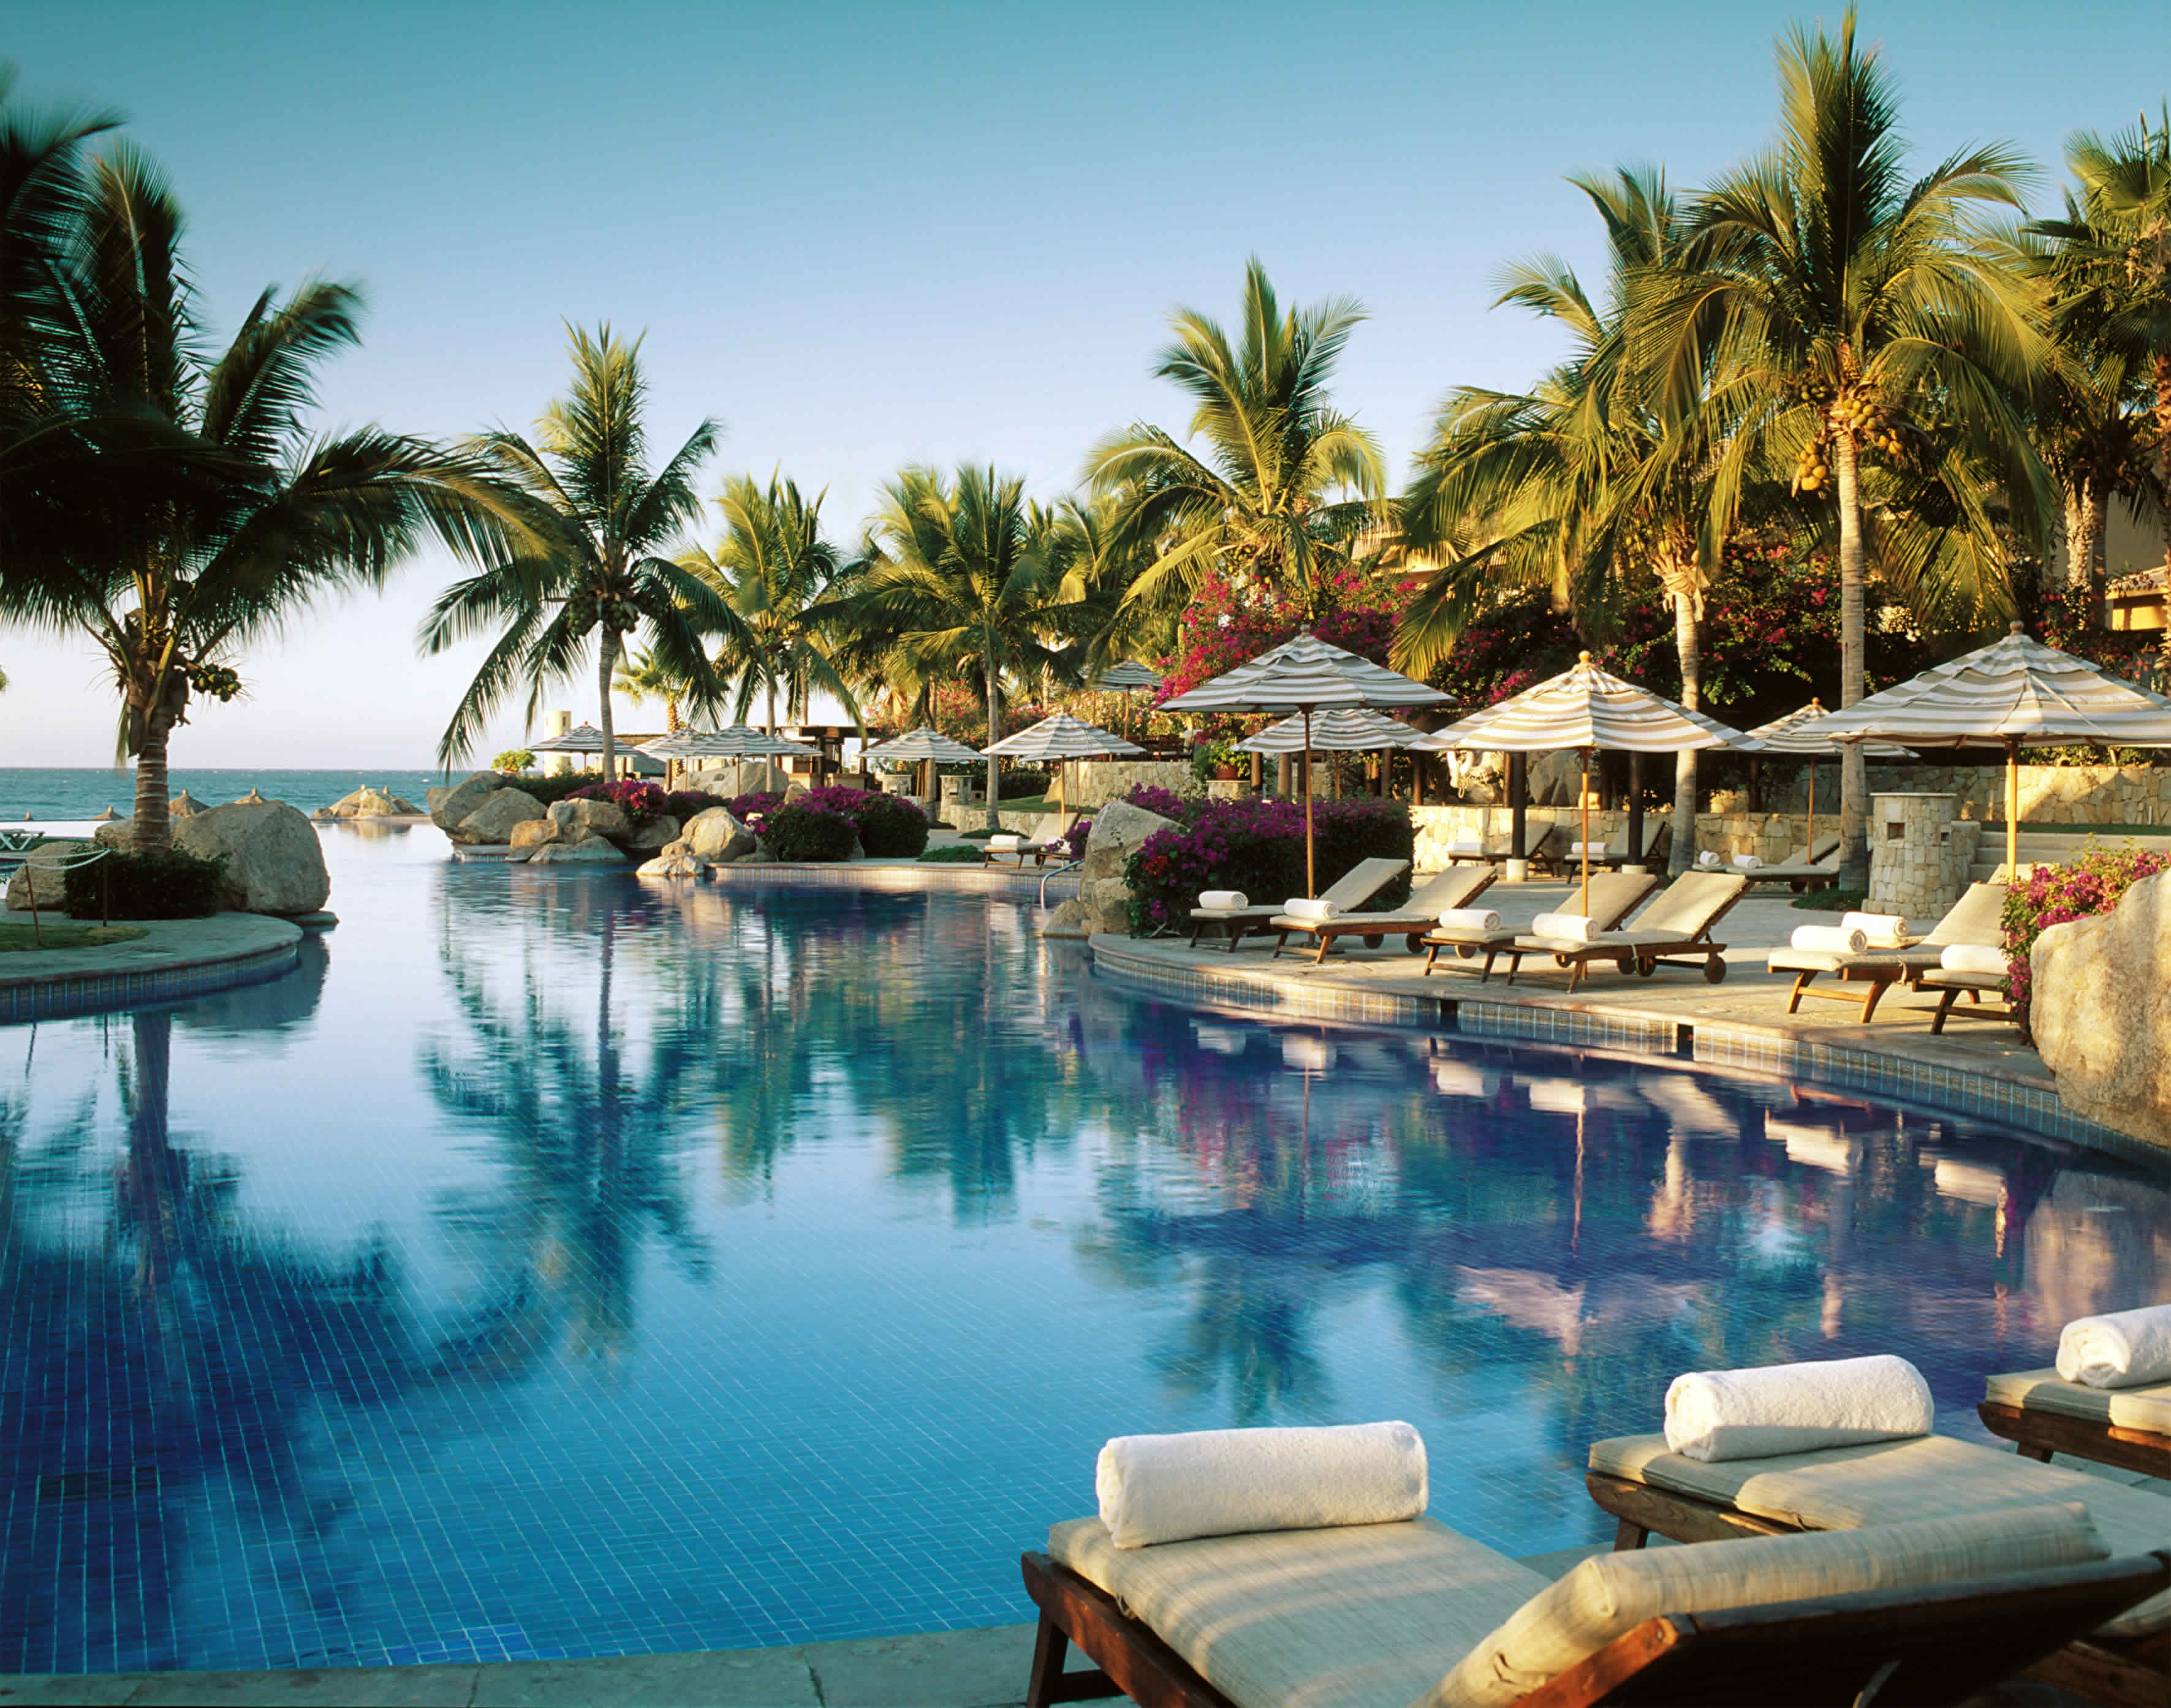 139243 download wallpaper Miscellanea, Miscellaneous, Relaxation, Rest, Tropics, Resort screensavers and pictures for free